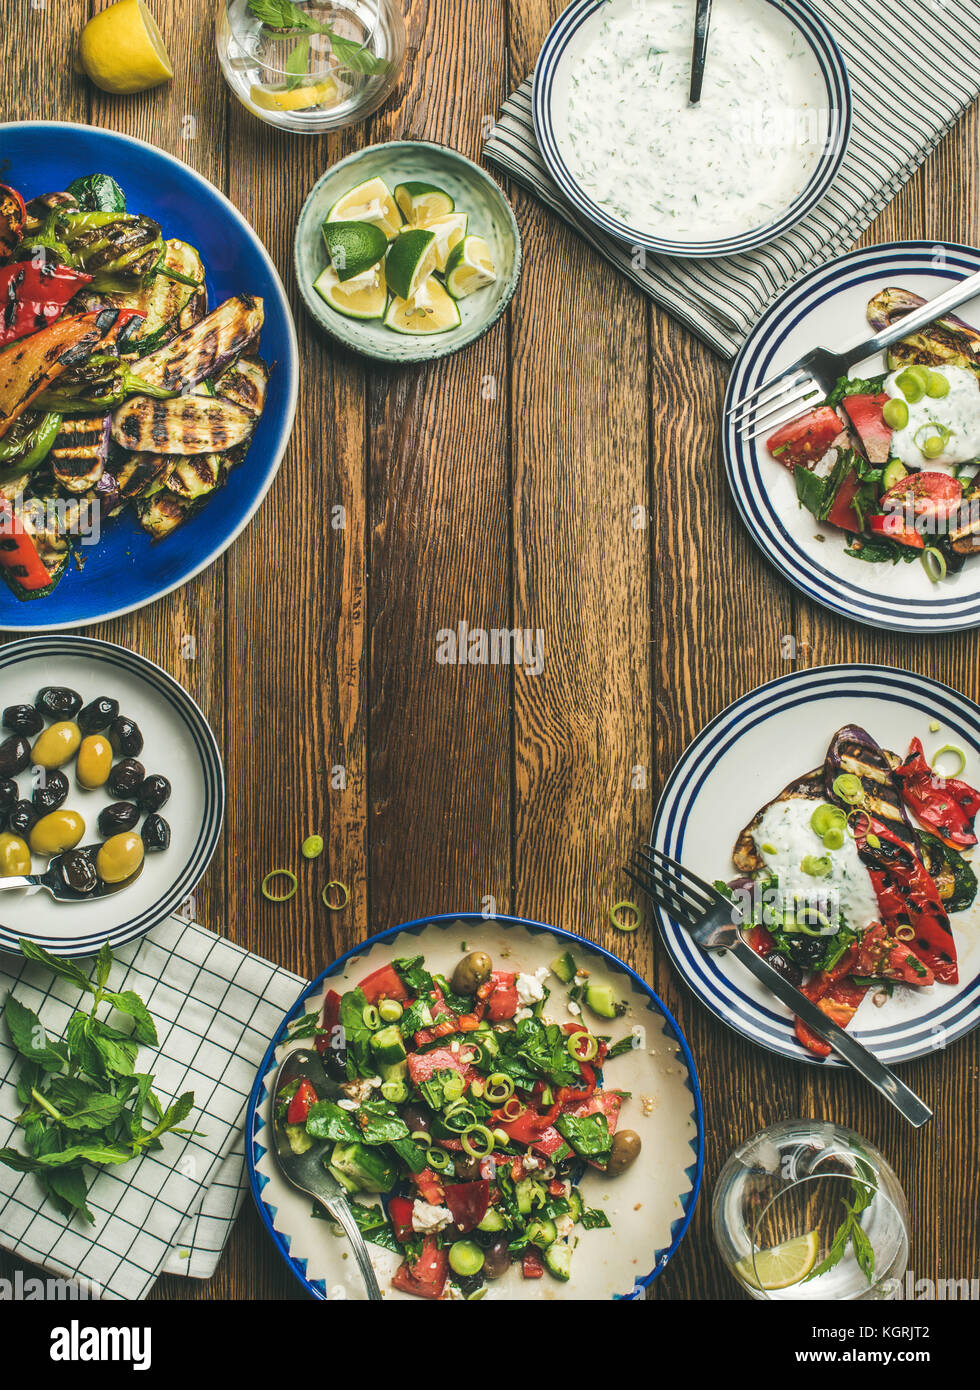 Flat-lay of healthy dinner table setting. Fresh salad, grilled vegetables with yogurt and dill sauce, pickled olives - Stock Image